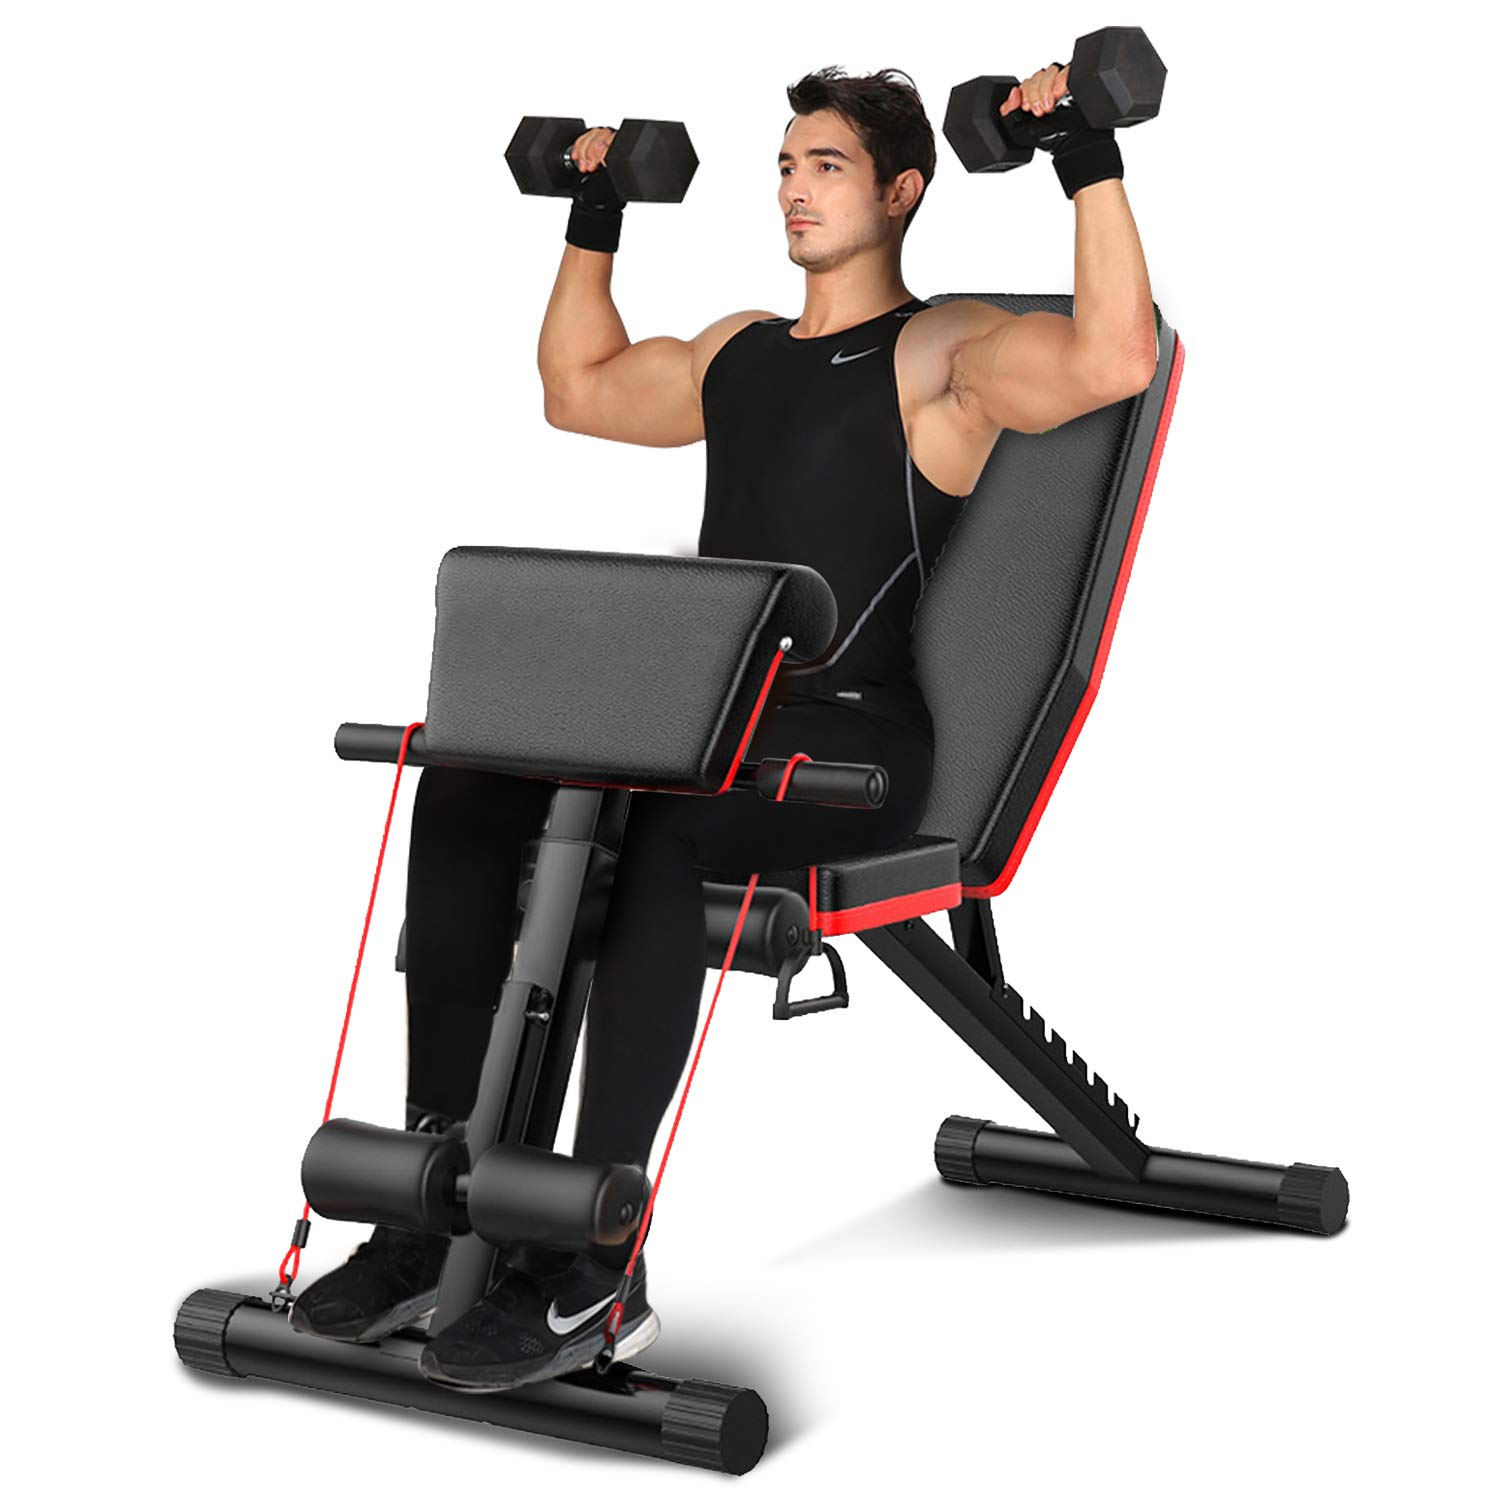 Details about  /7LVL Adjustable Weight Abdominal Bench Sit-up Fitness Flat Gym Exercise Dumbbell